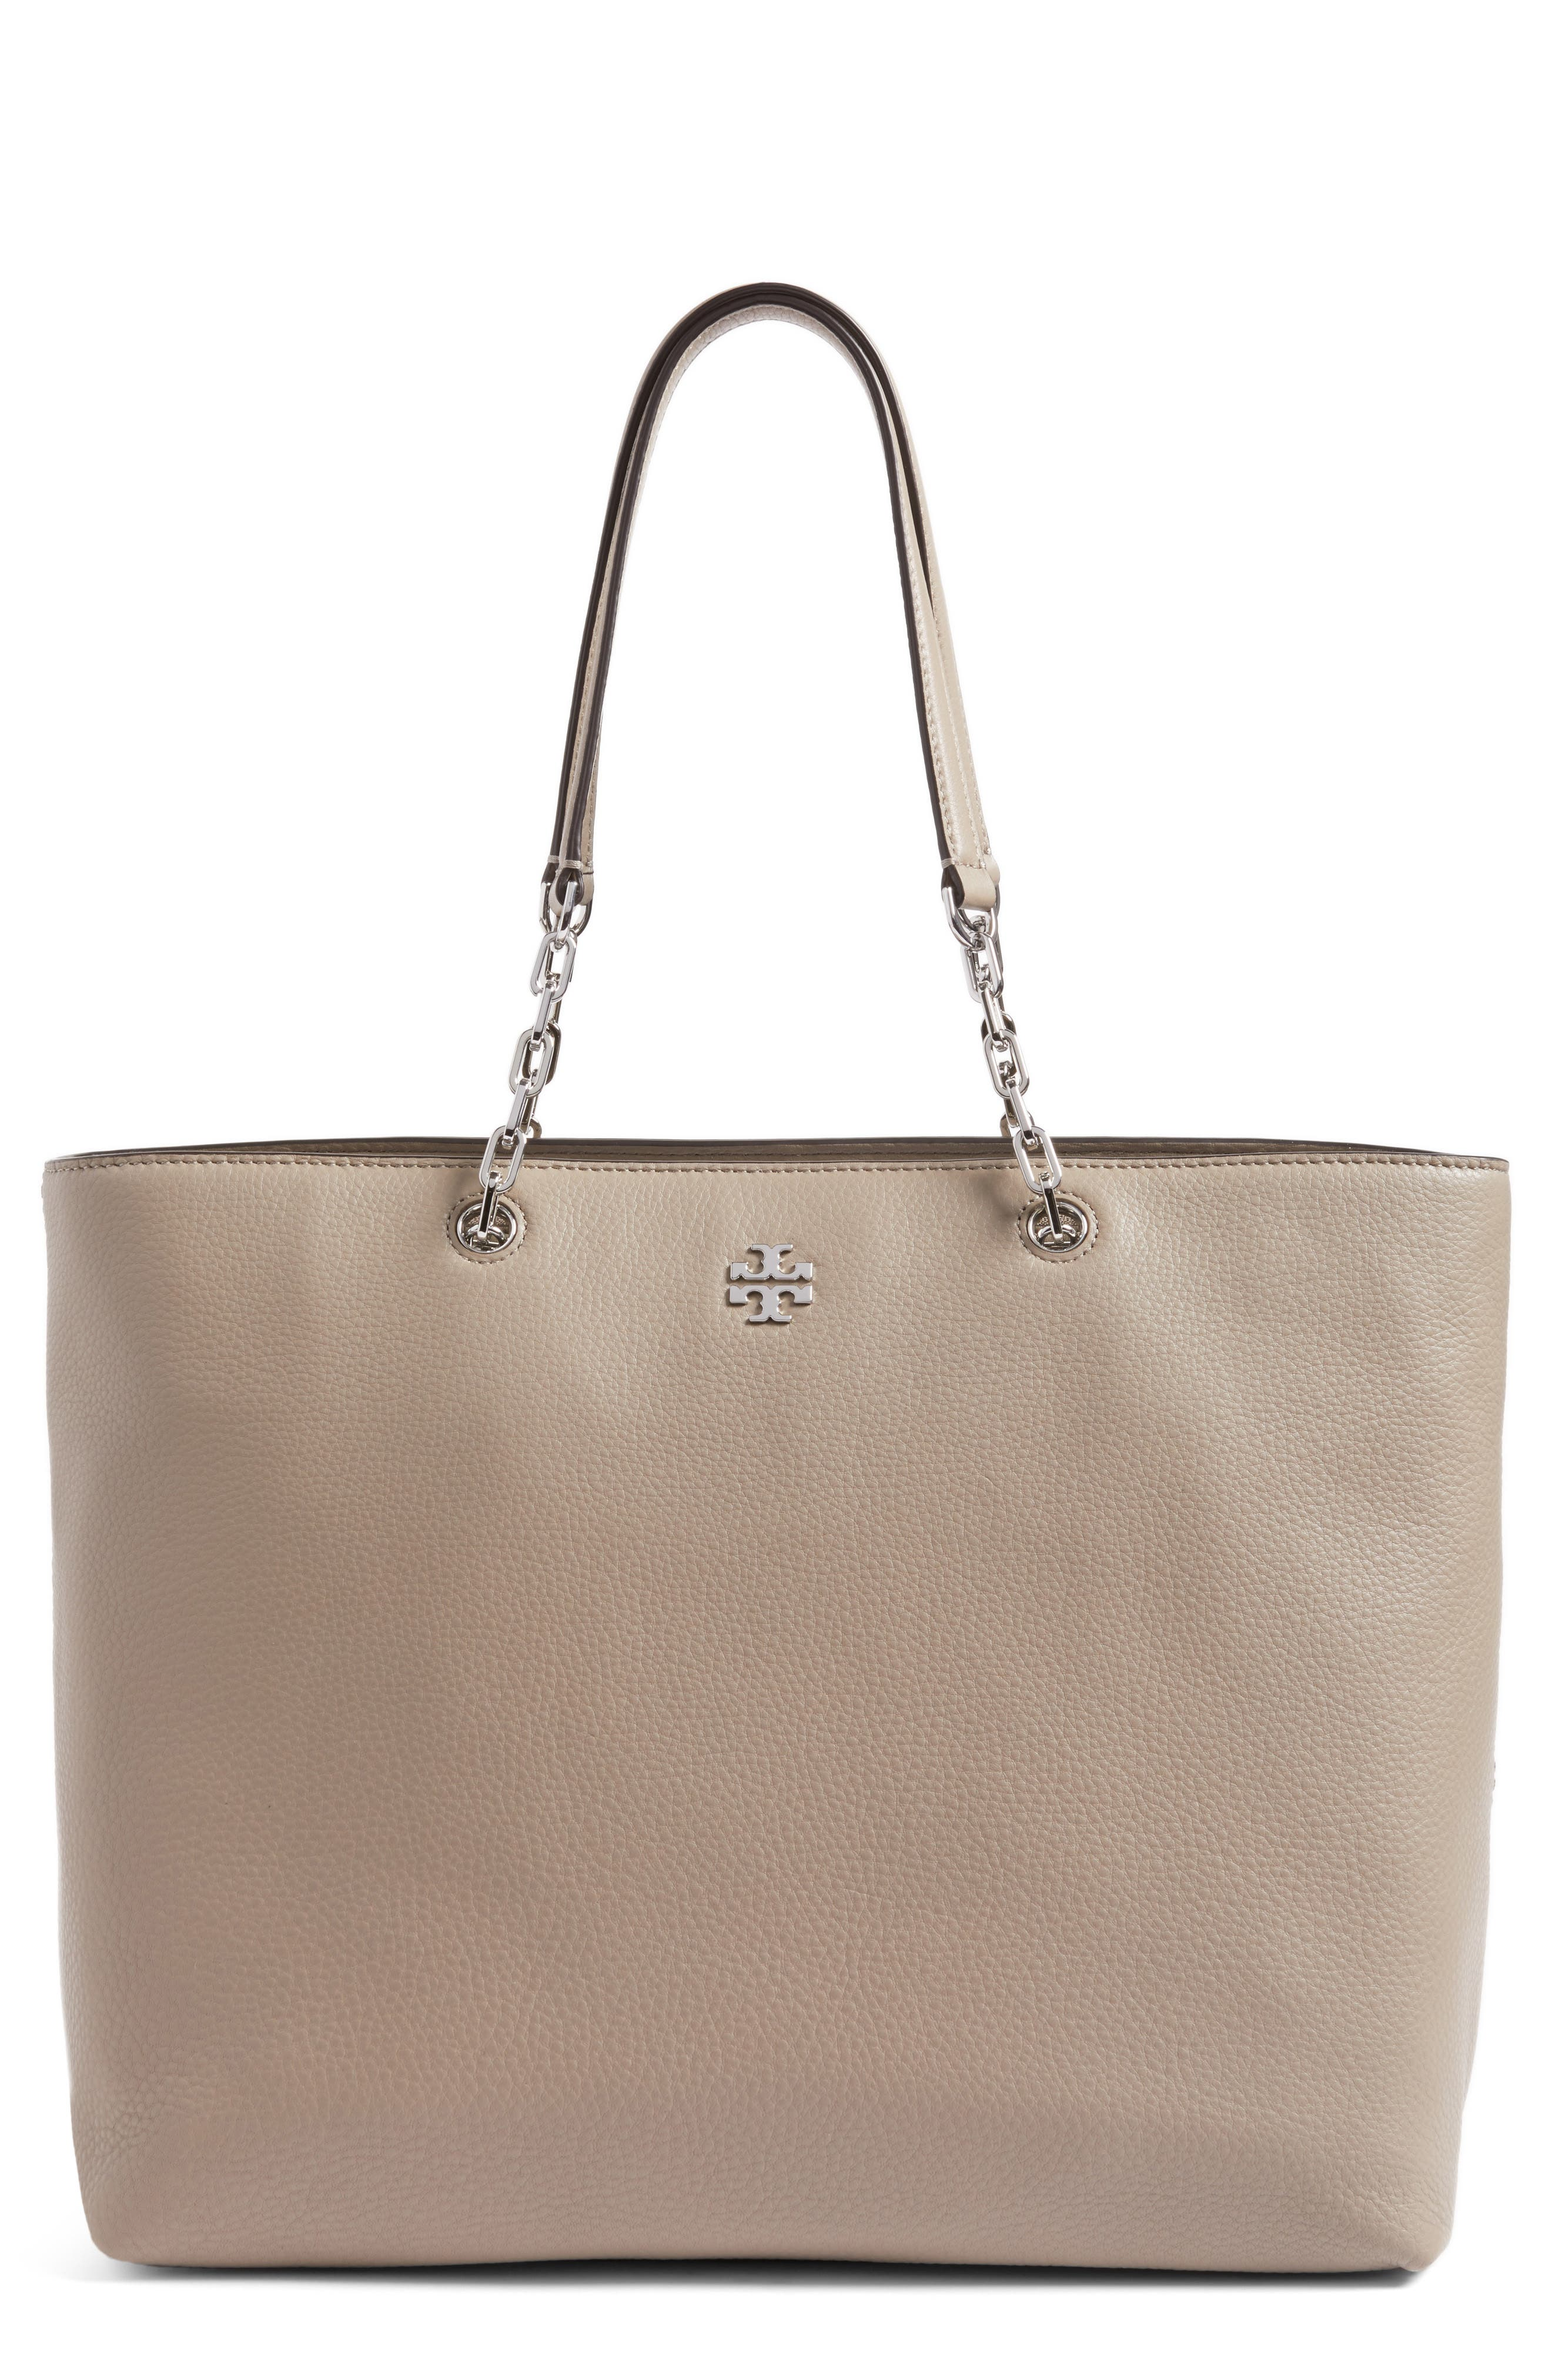 TORY BURCH Frida Pebbled Leather Tote